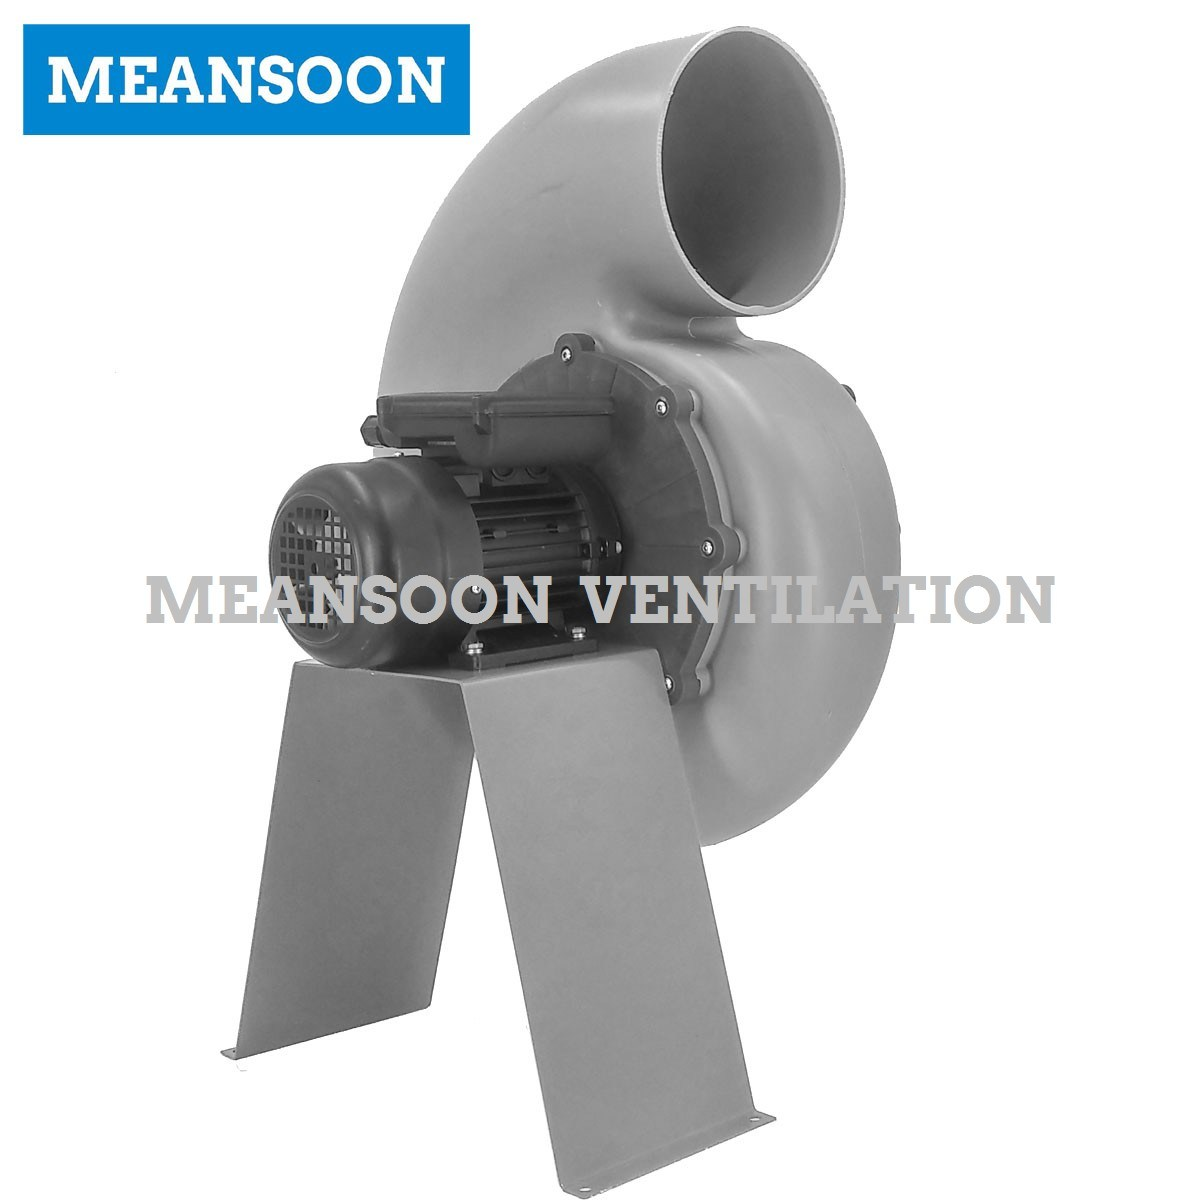 Plastic Corrosion Resistant Centrifugal Blower 200 for Deodorization System